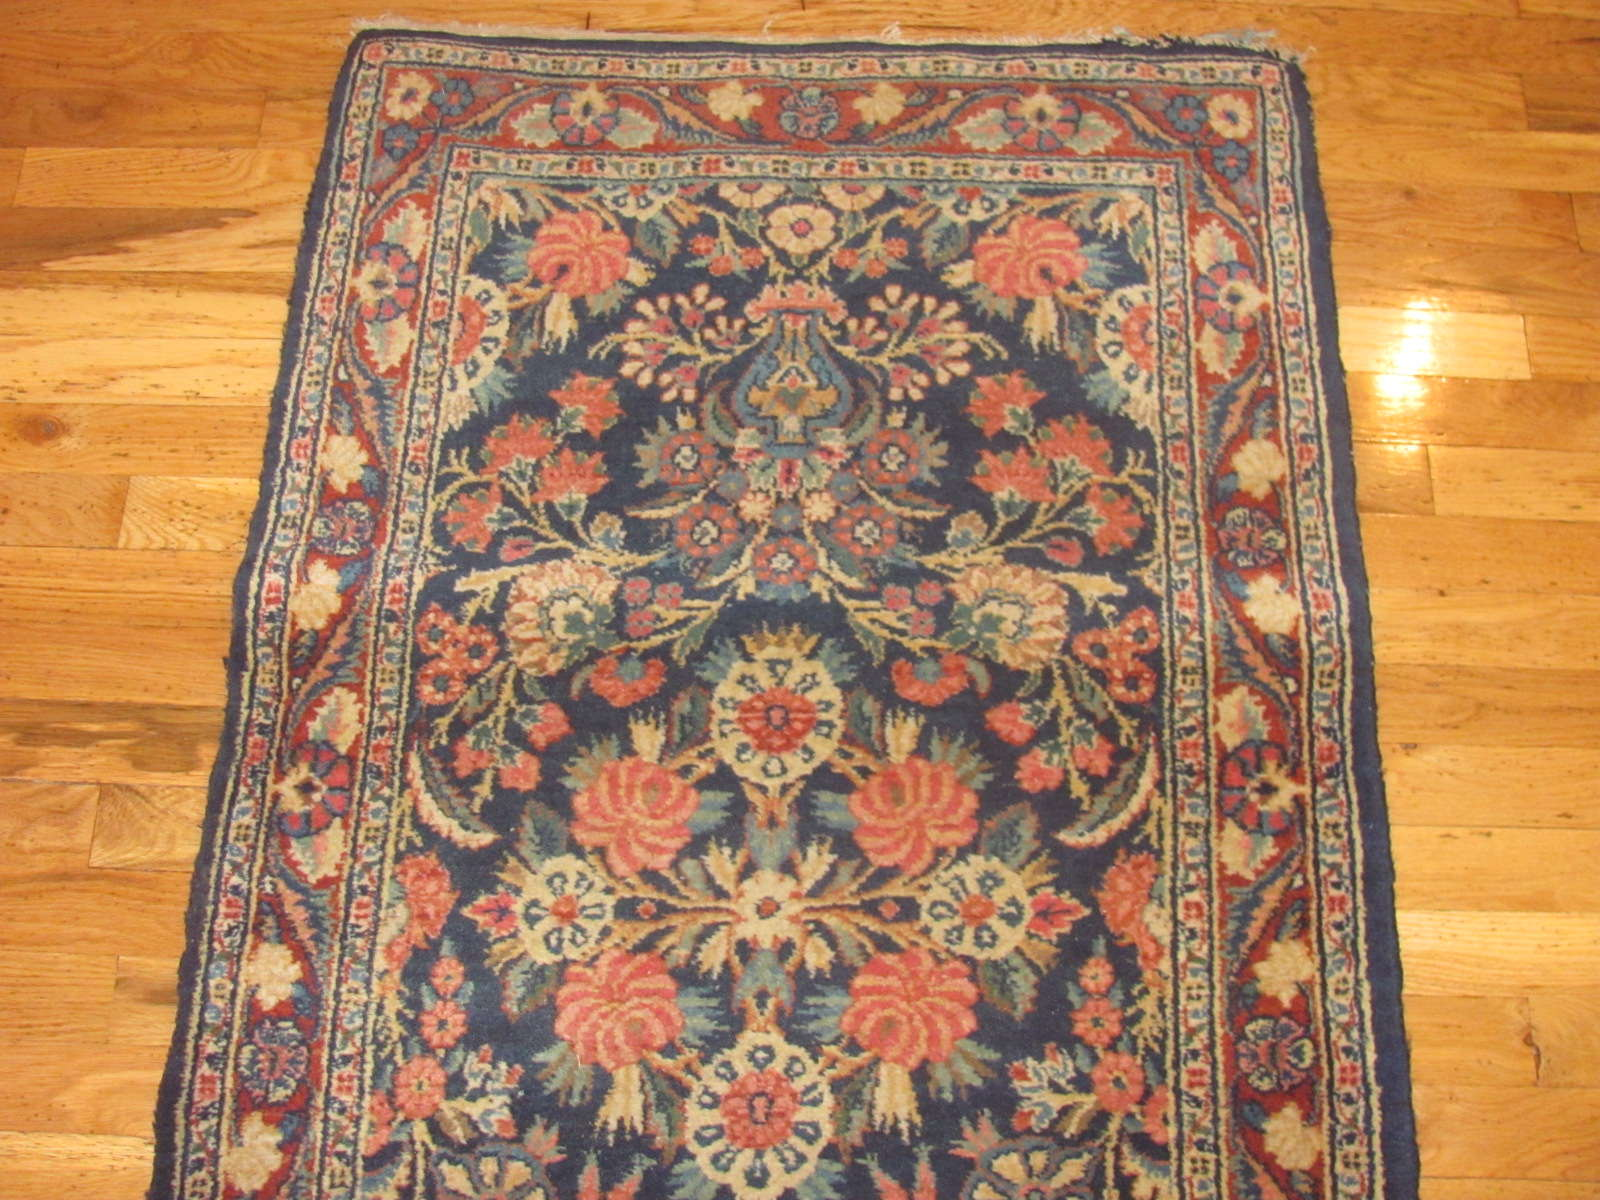 24404 Persian Kazvin runner 2,9x12,7 -1